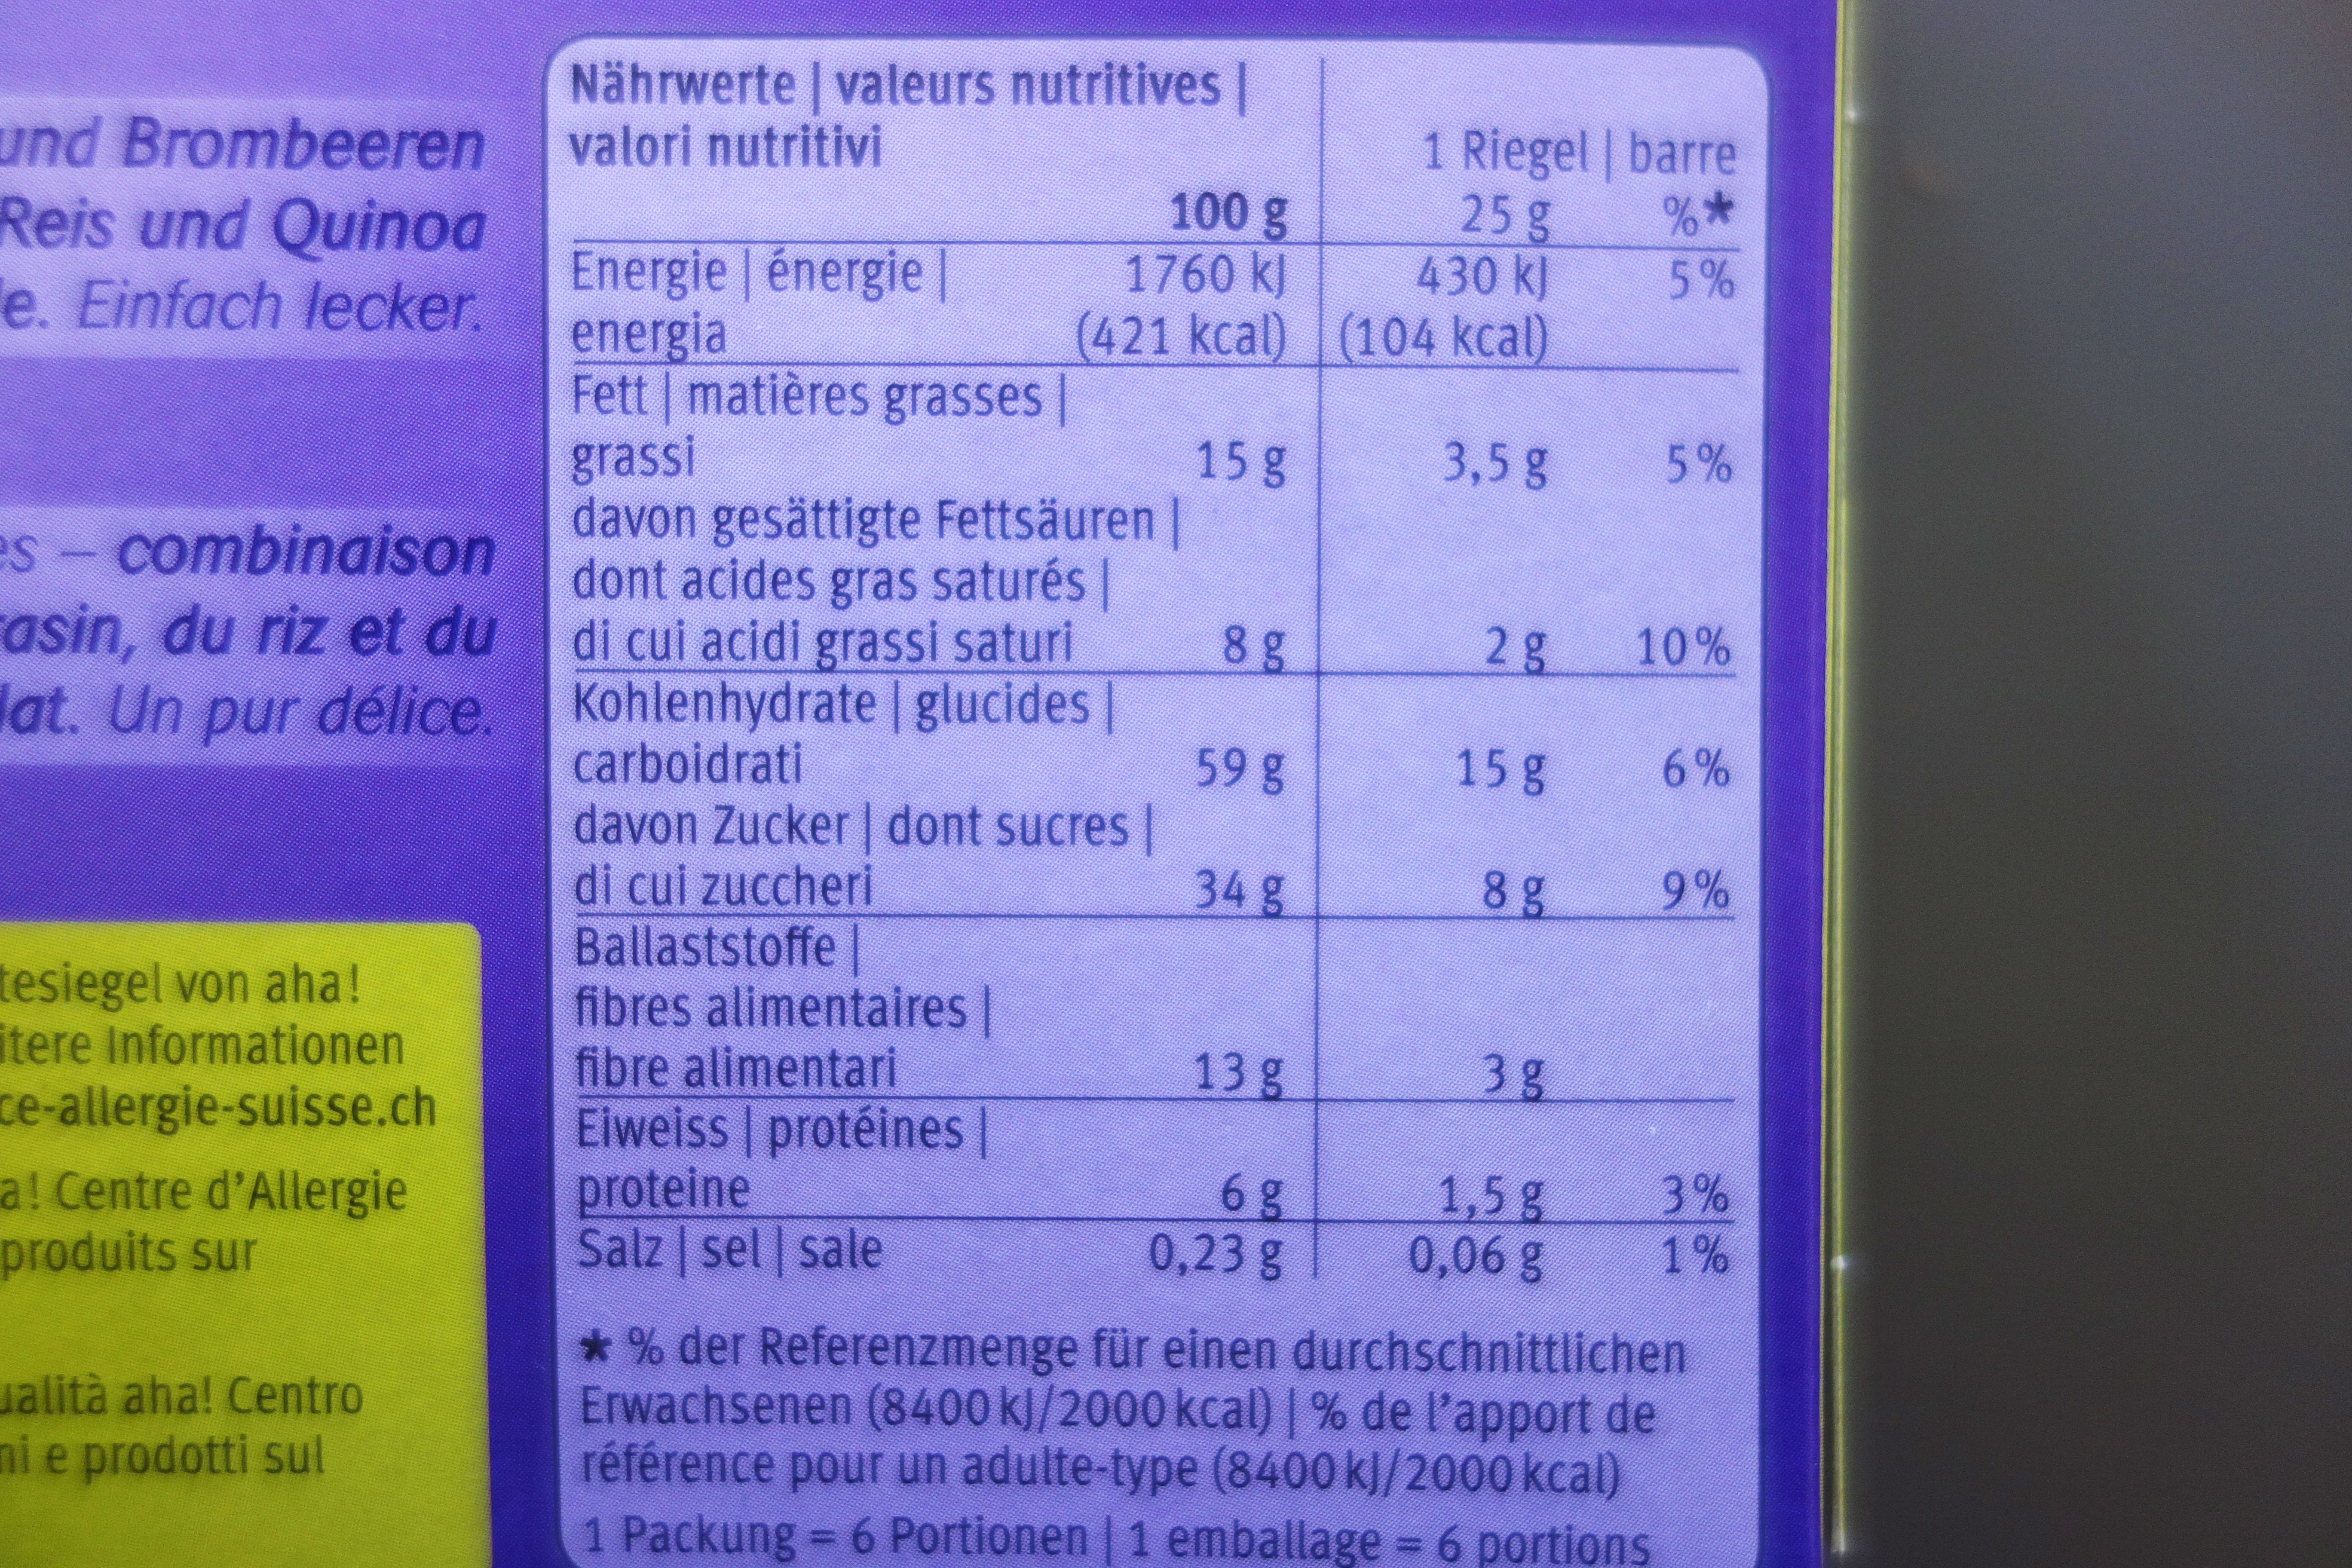 Nutrition Facts on packaging